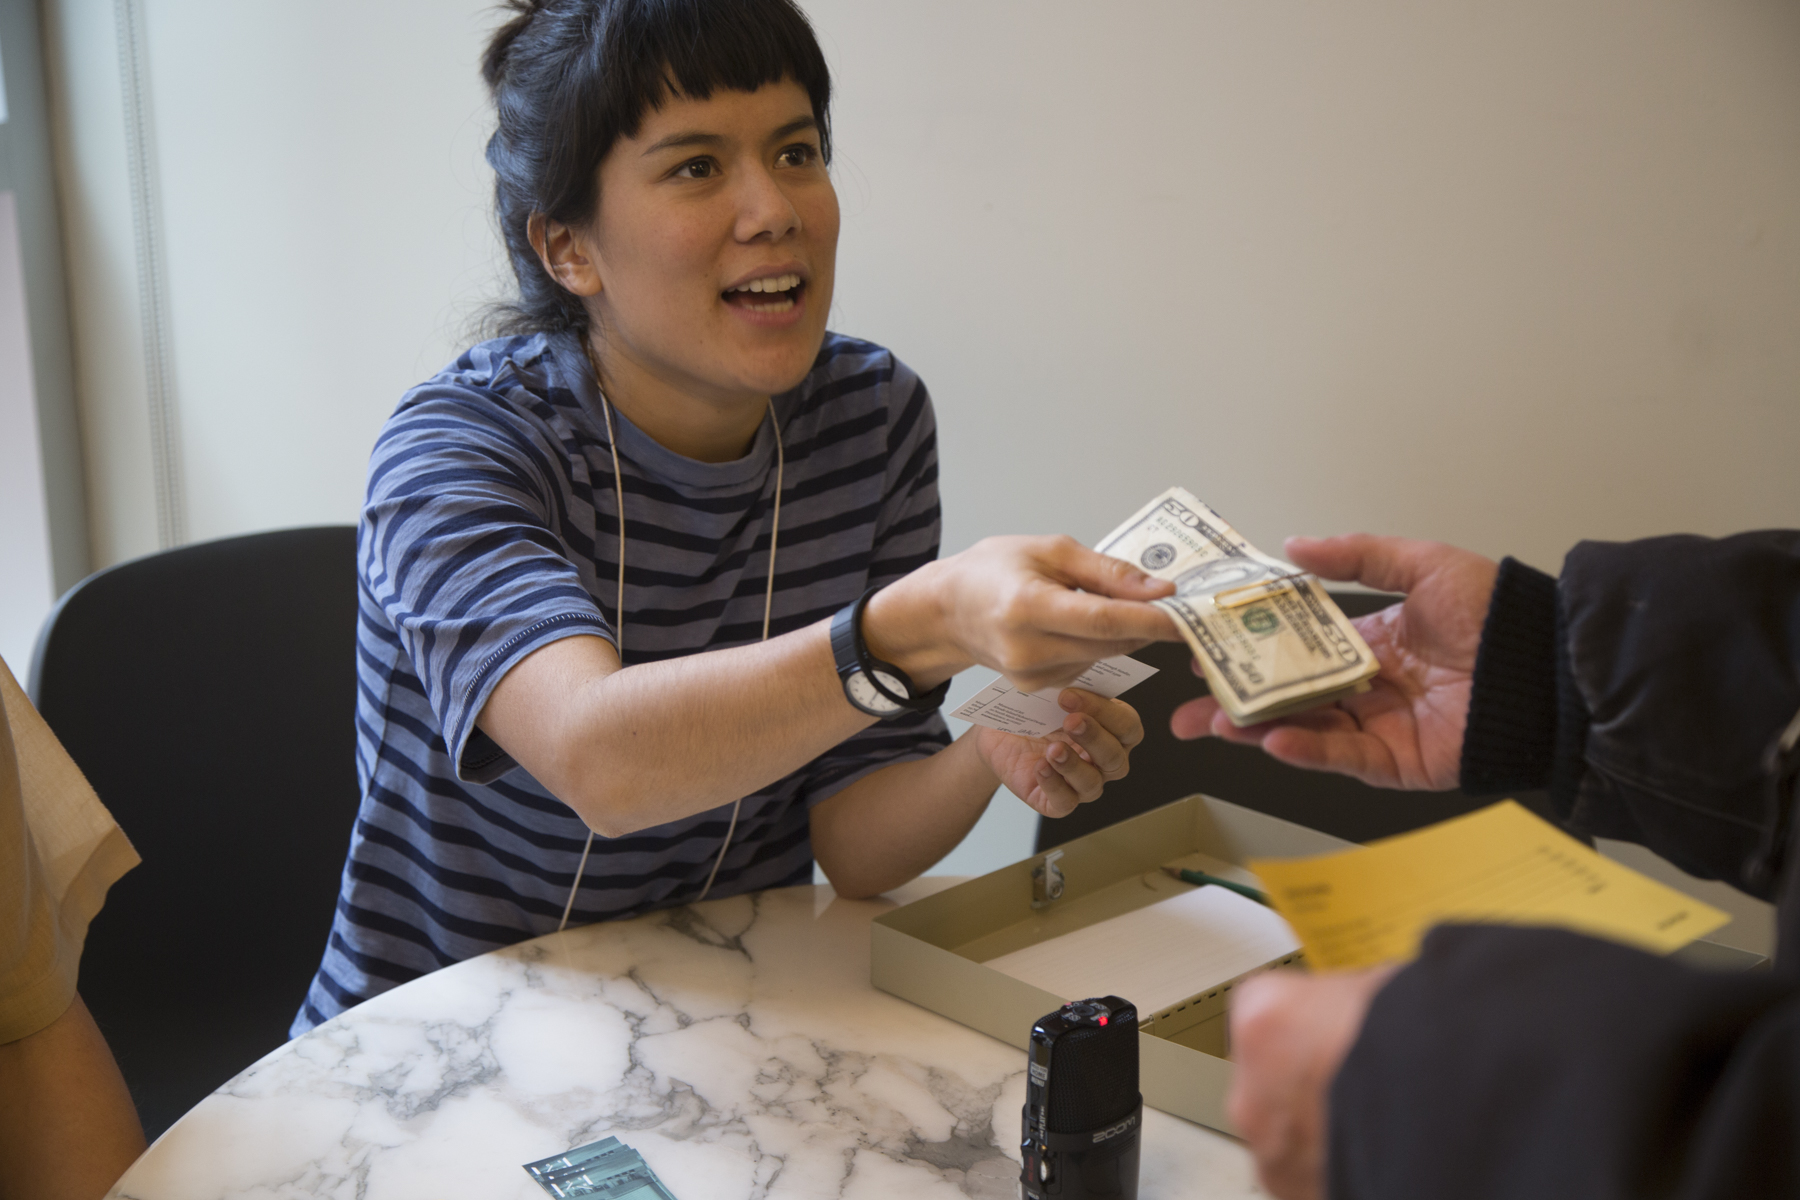 Guest critics were paid $75 in cash at the end of their visit. - They were paid $15 an hour—above living wage in Providence, RI—for 5 hours of work. This included a 30-minute pre-visit phone interview, a 1-hour orientation, 2-hours looking at art, 1-hour discussion and critique, and a final 30-minute post-visit phone interview.